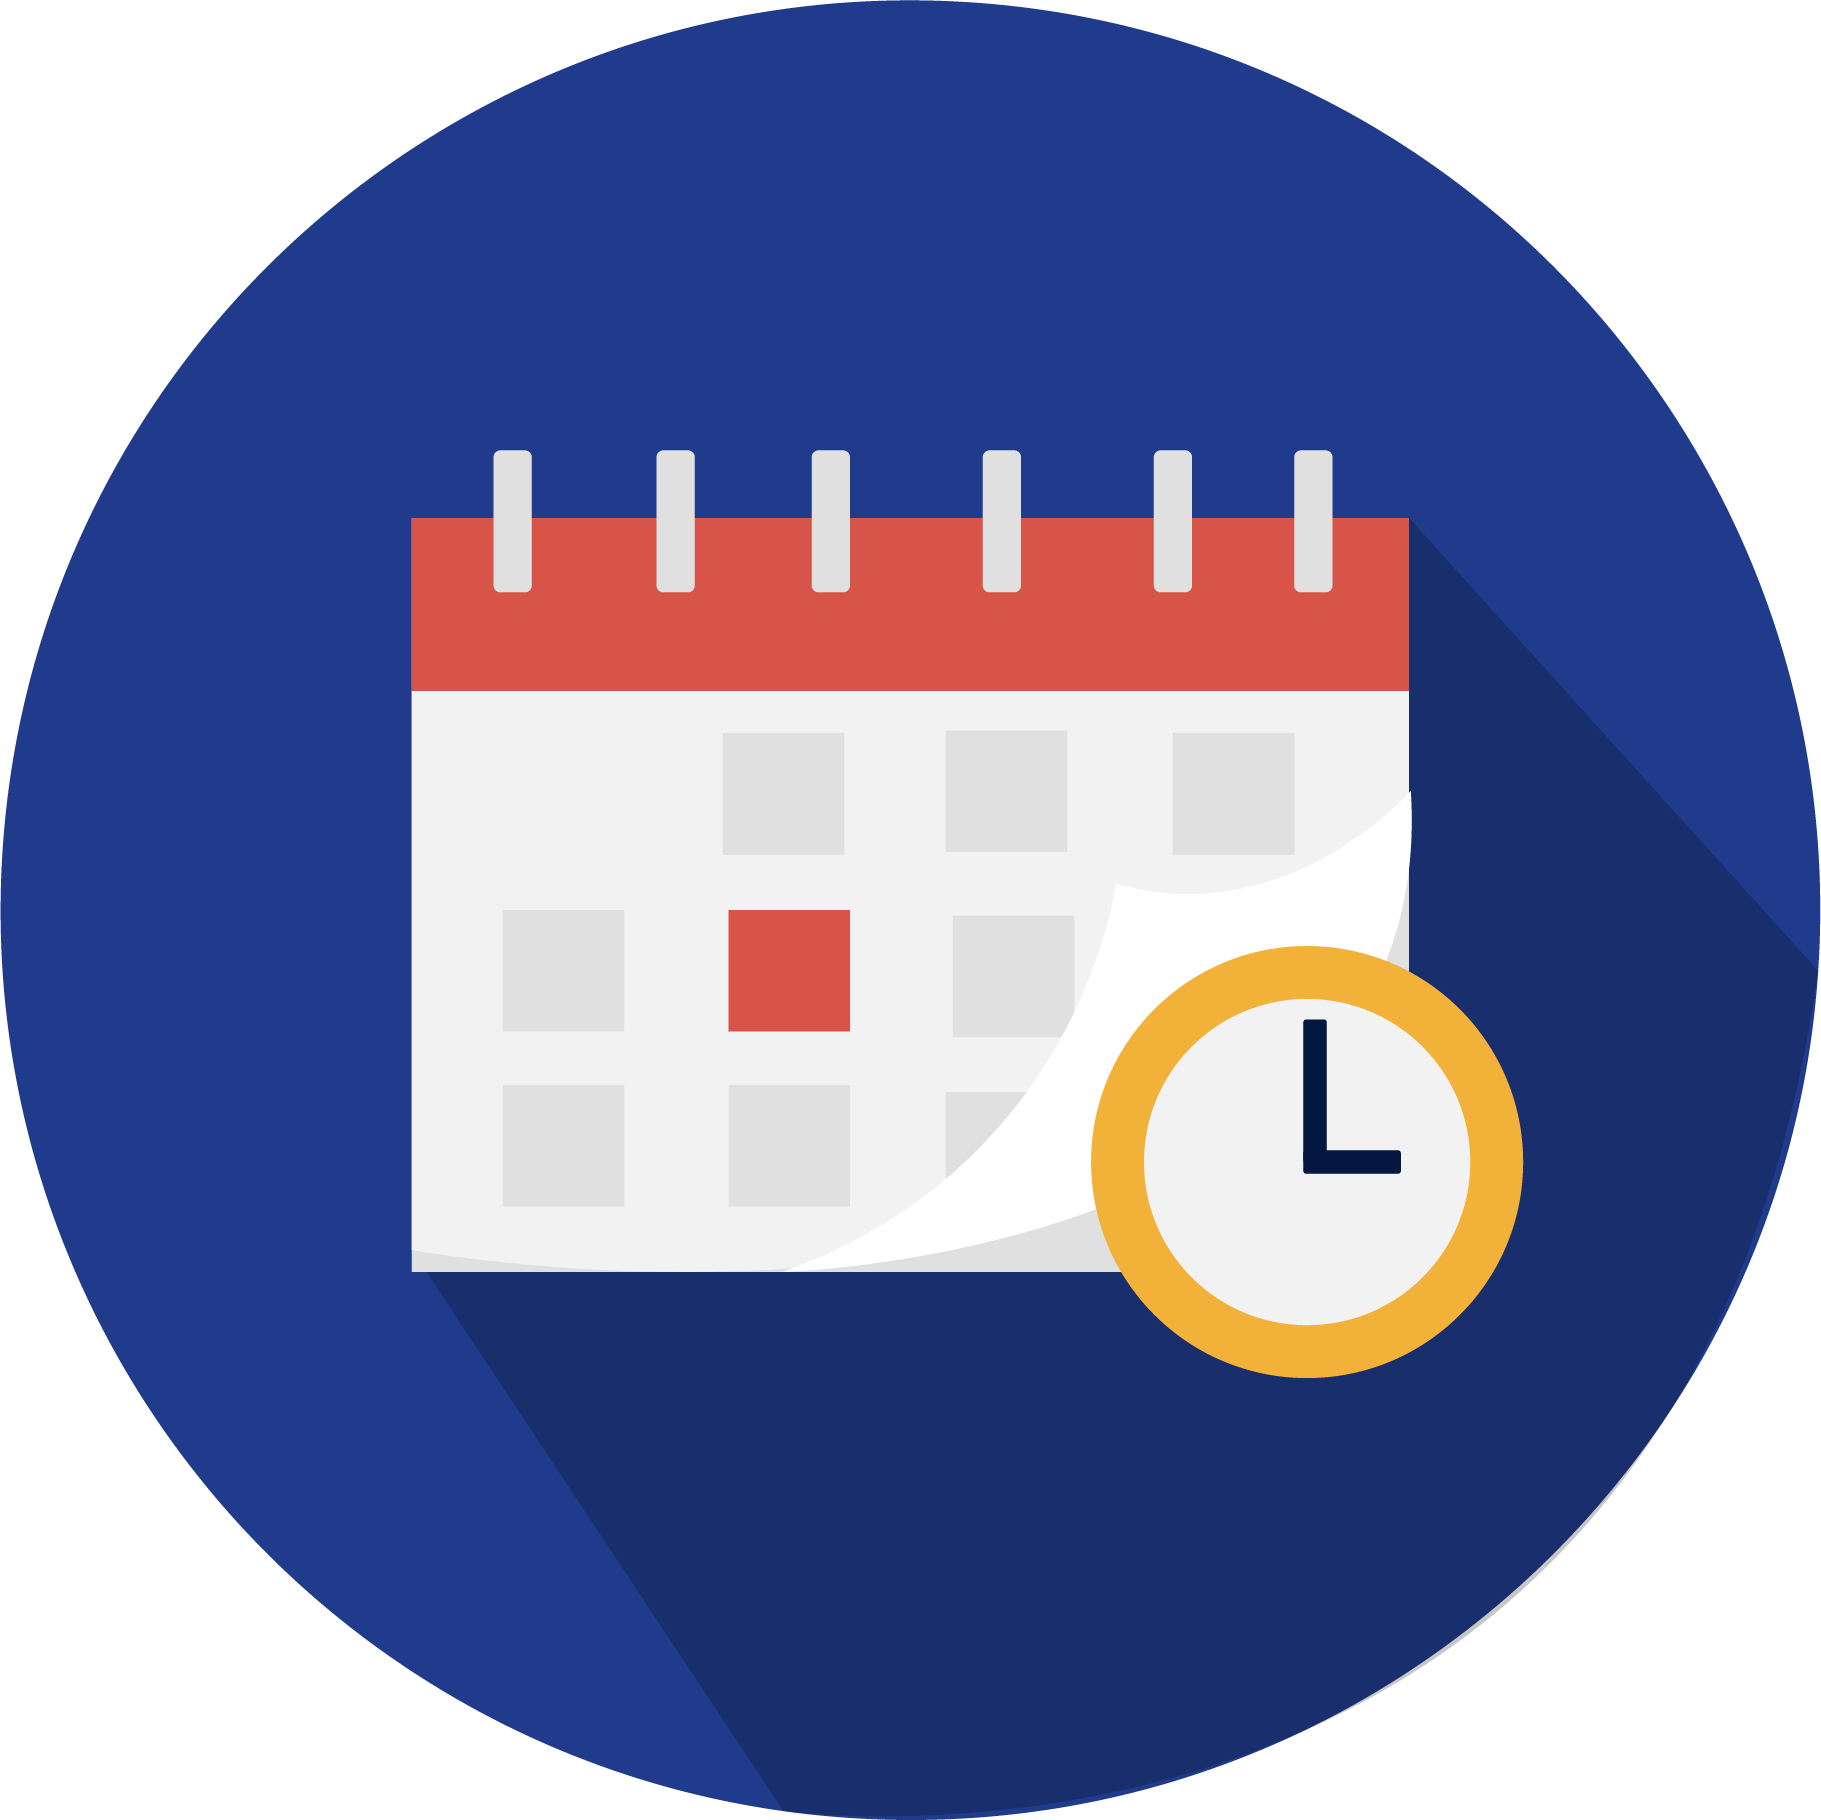 Icon of a calendar and a clock